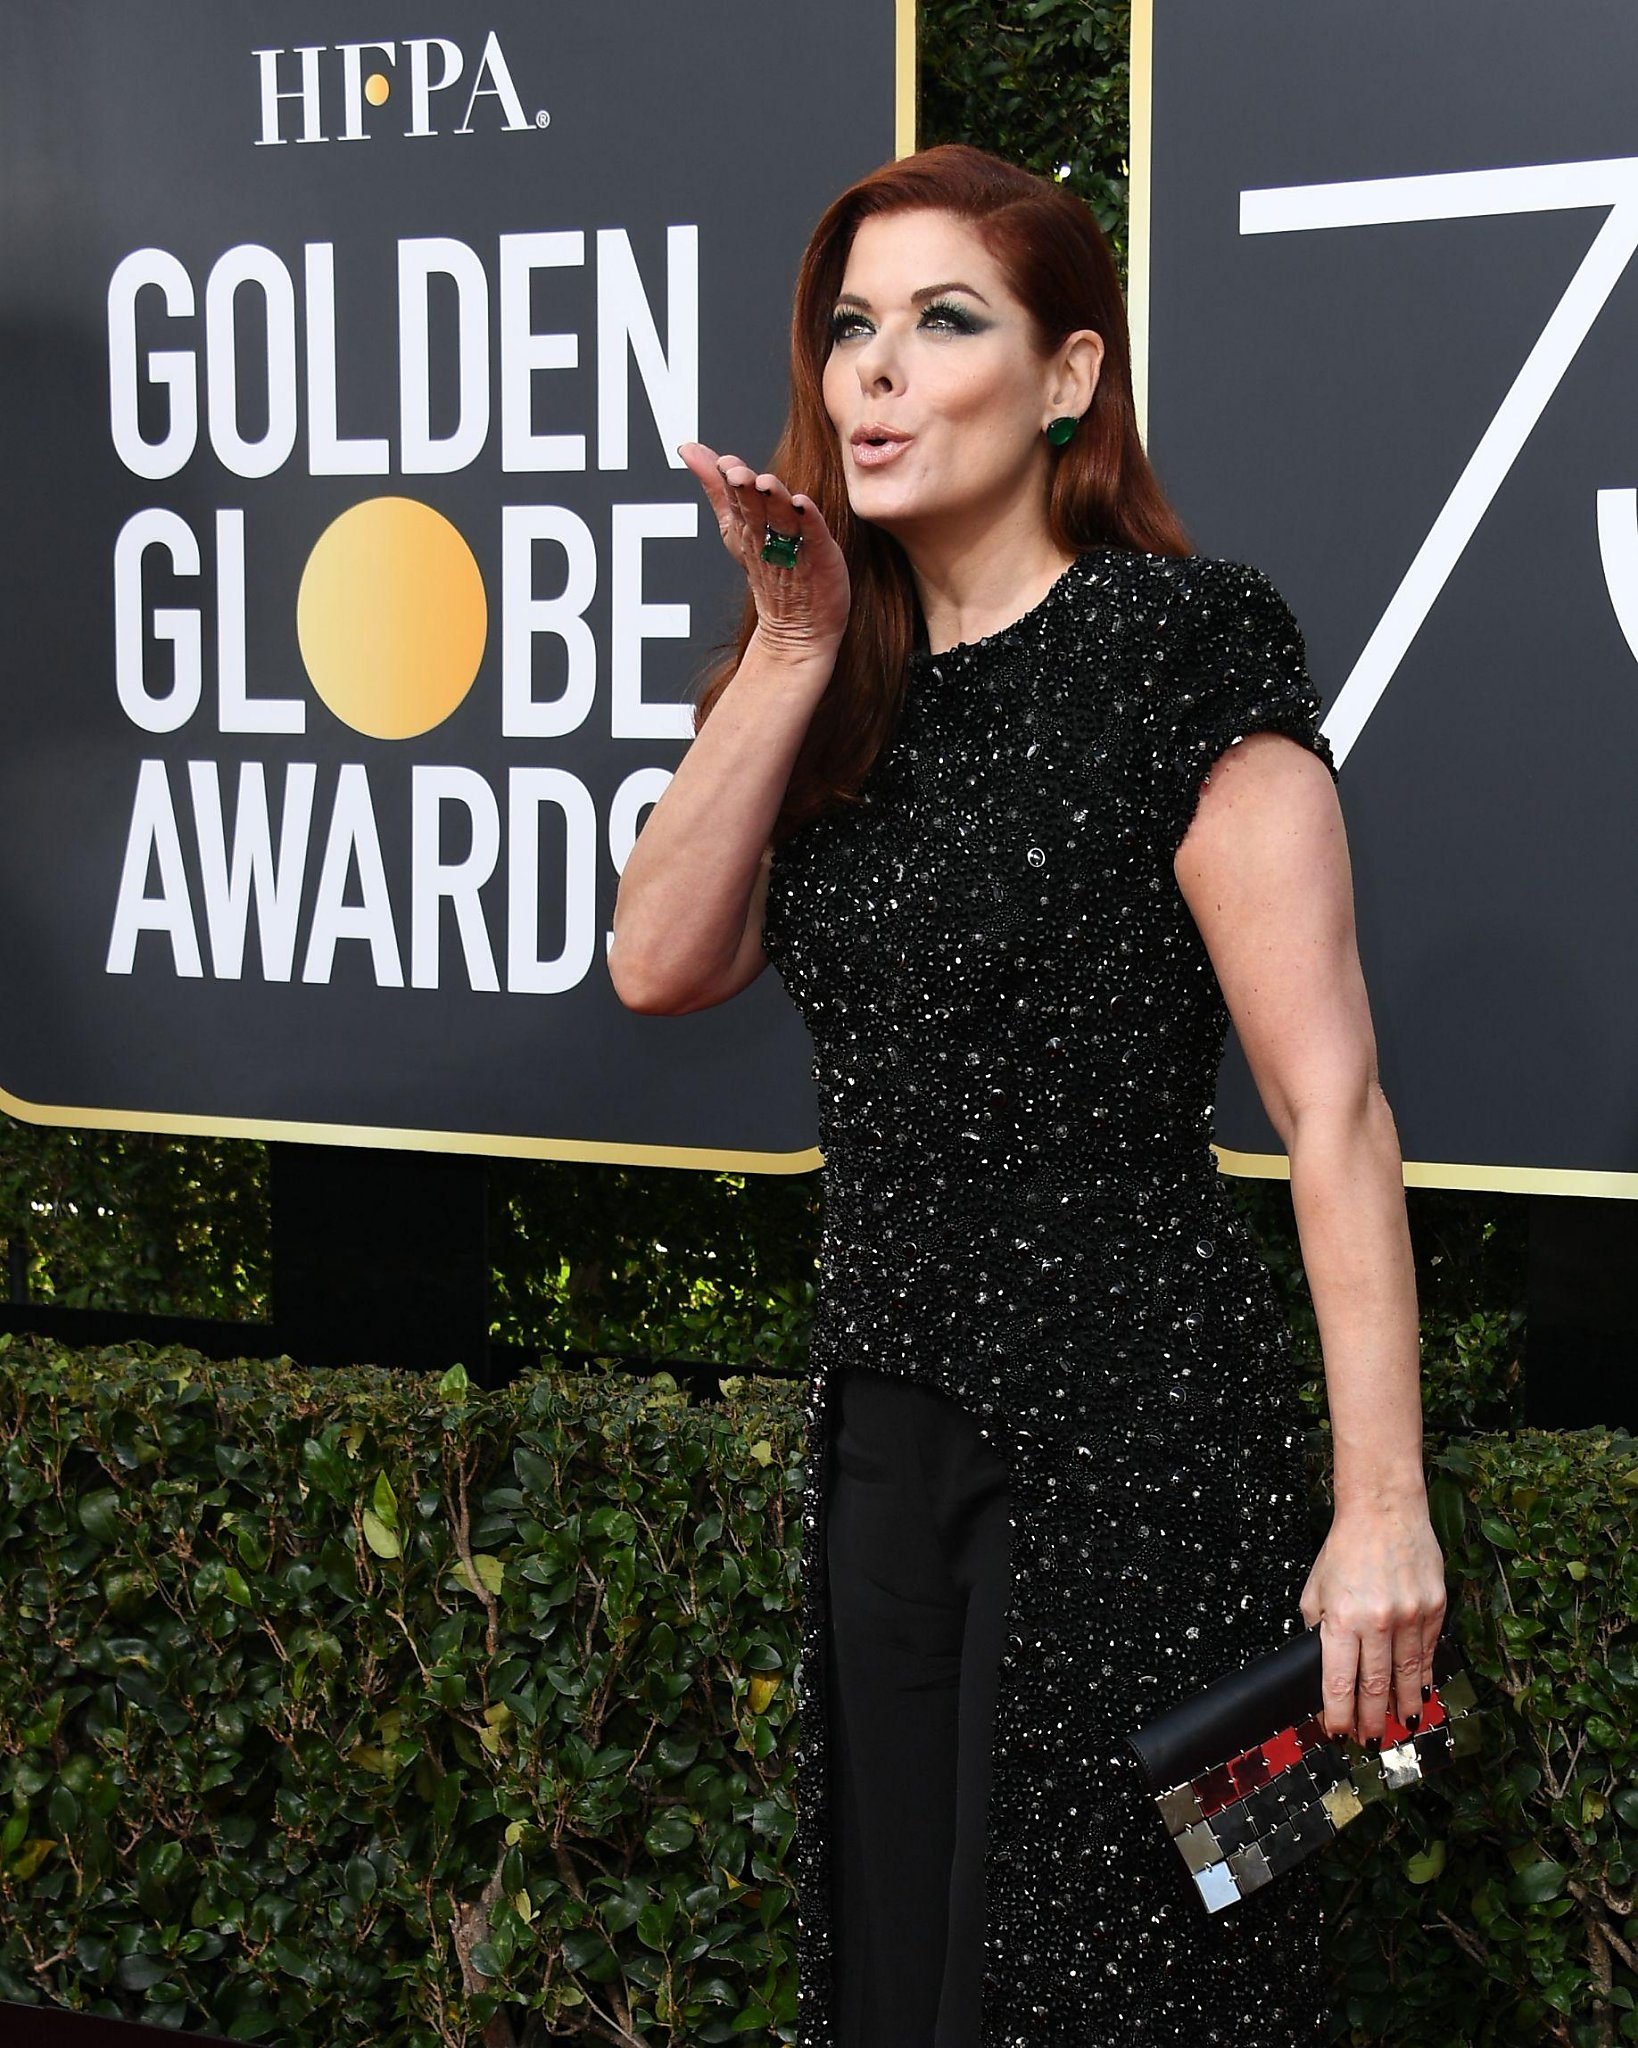 Golden Globes 2018: Debra Messing calls out E! on pay inequality during red carpet